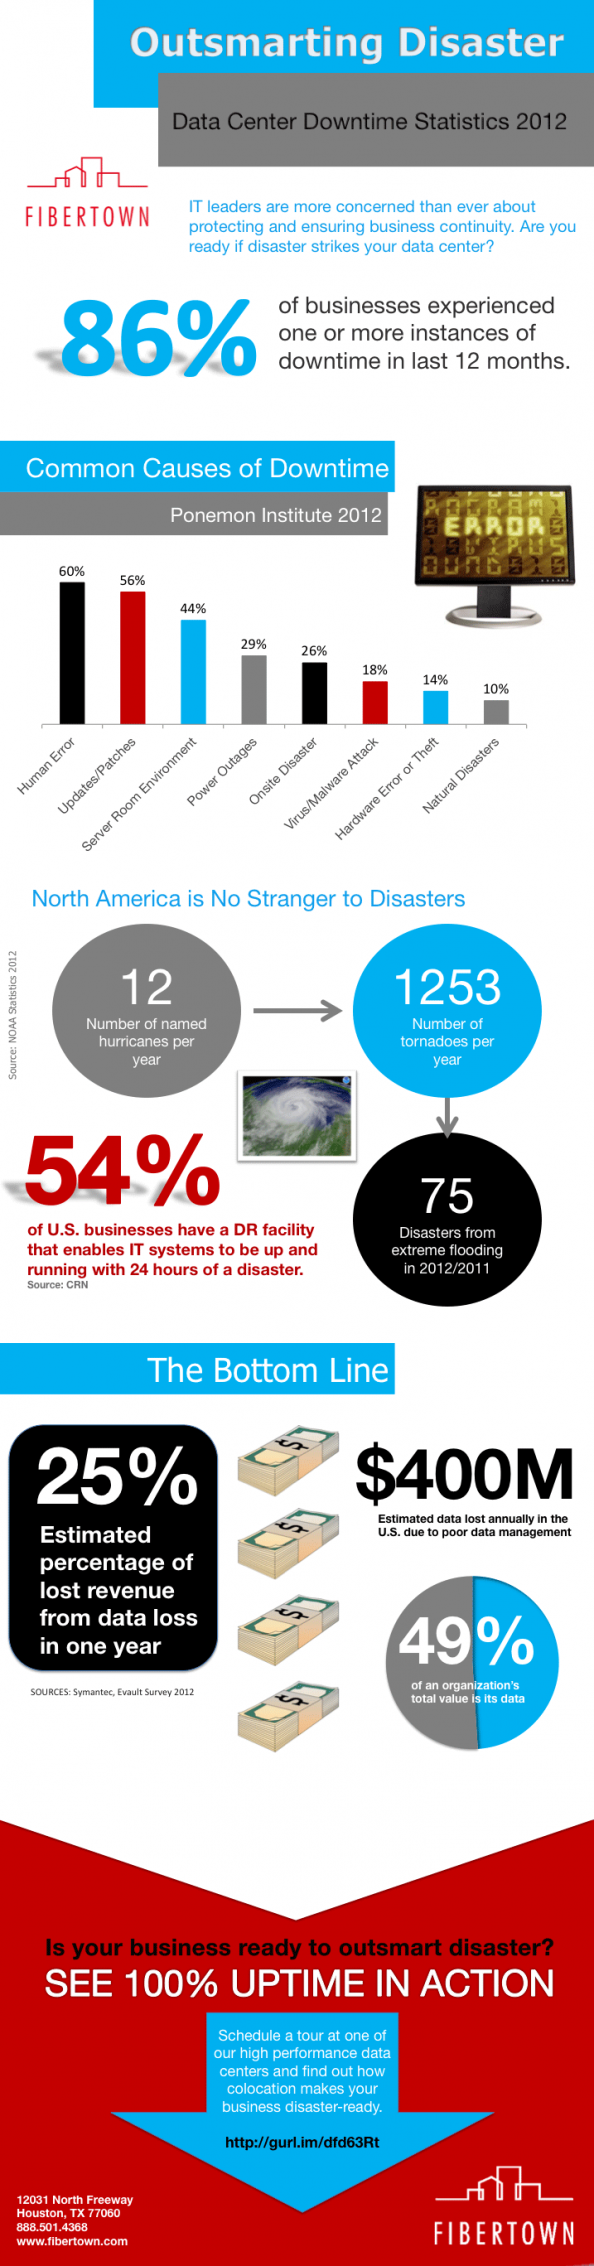 Outsmarting Data Center Downtime Infographic